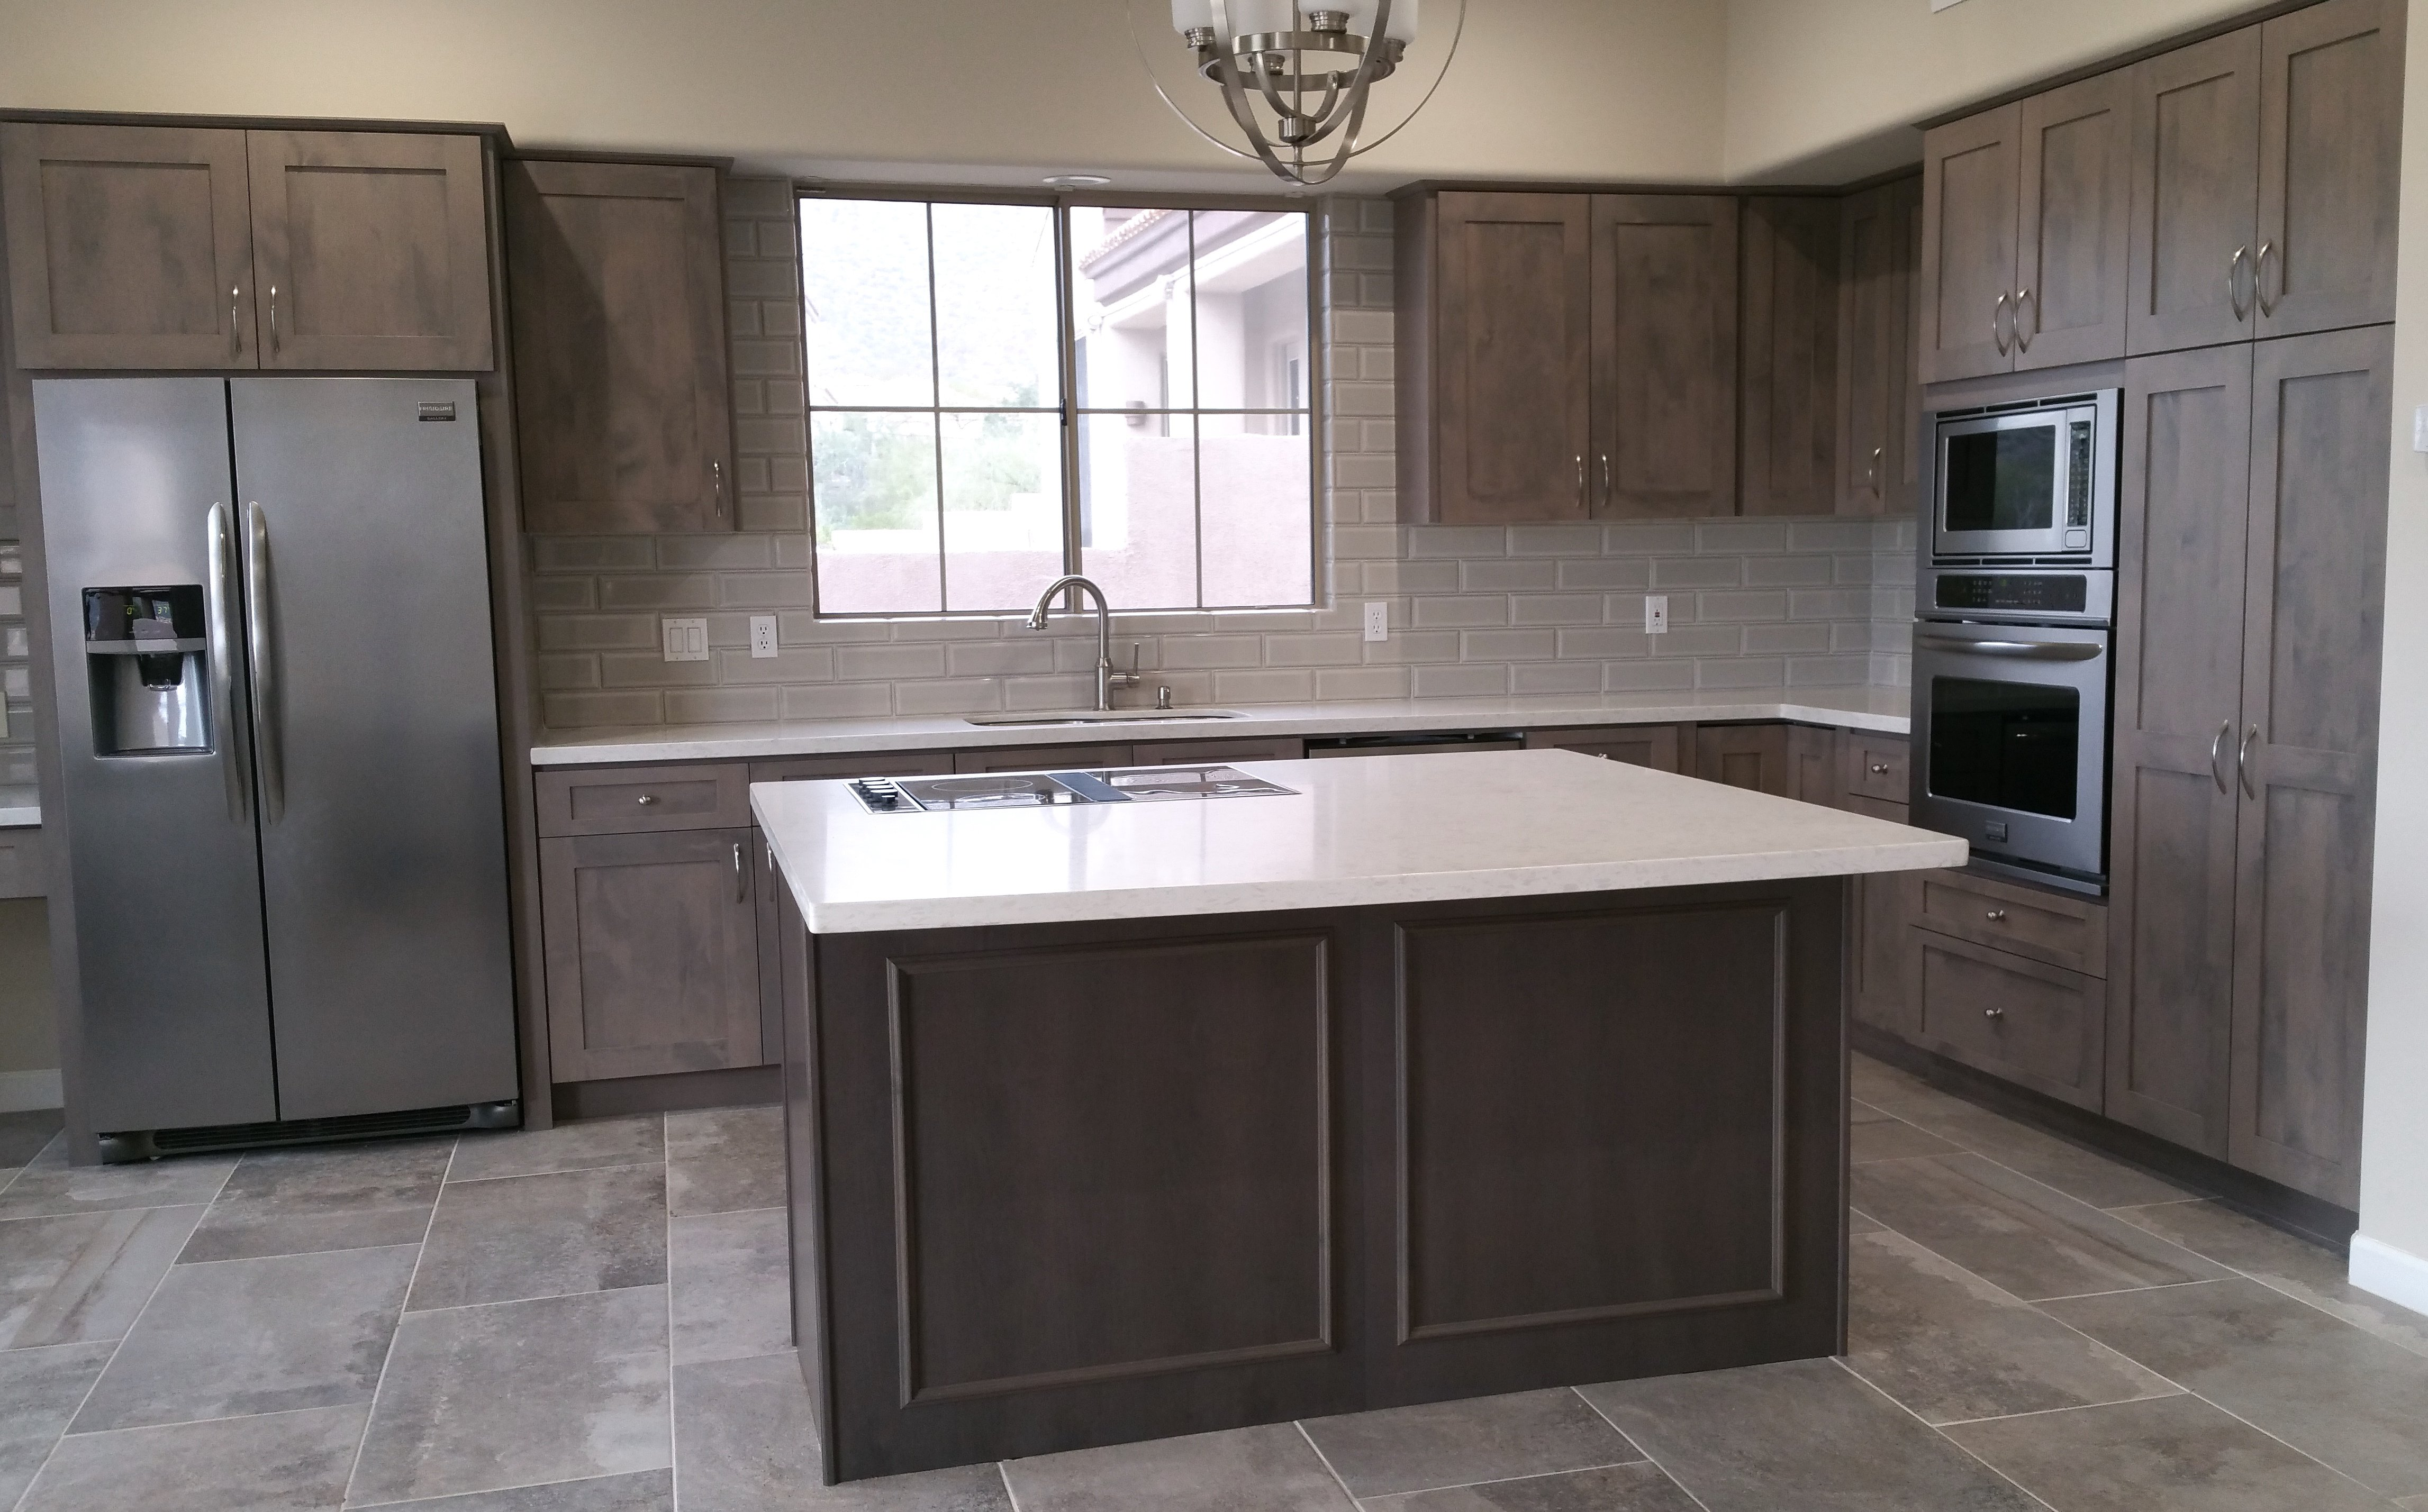 Better Than New Kitchens | Kitchen Cabinet Refacing Services in Arizona